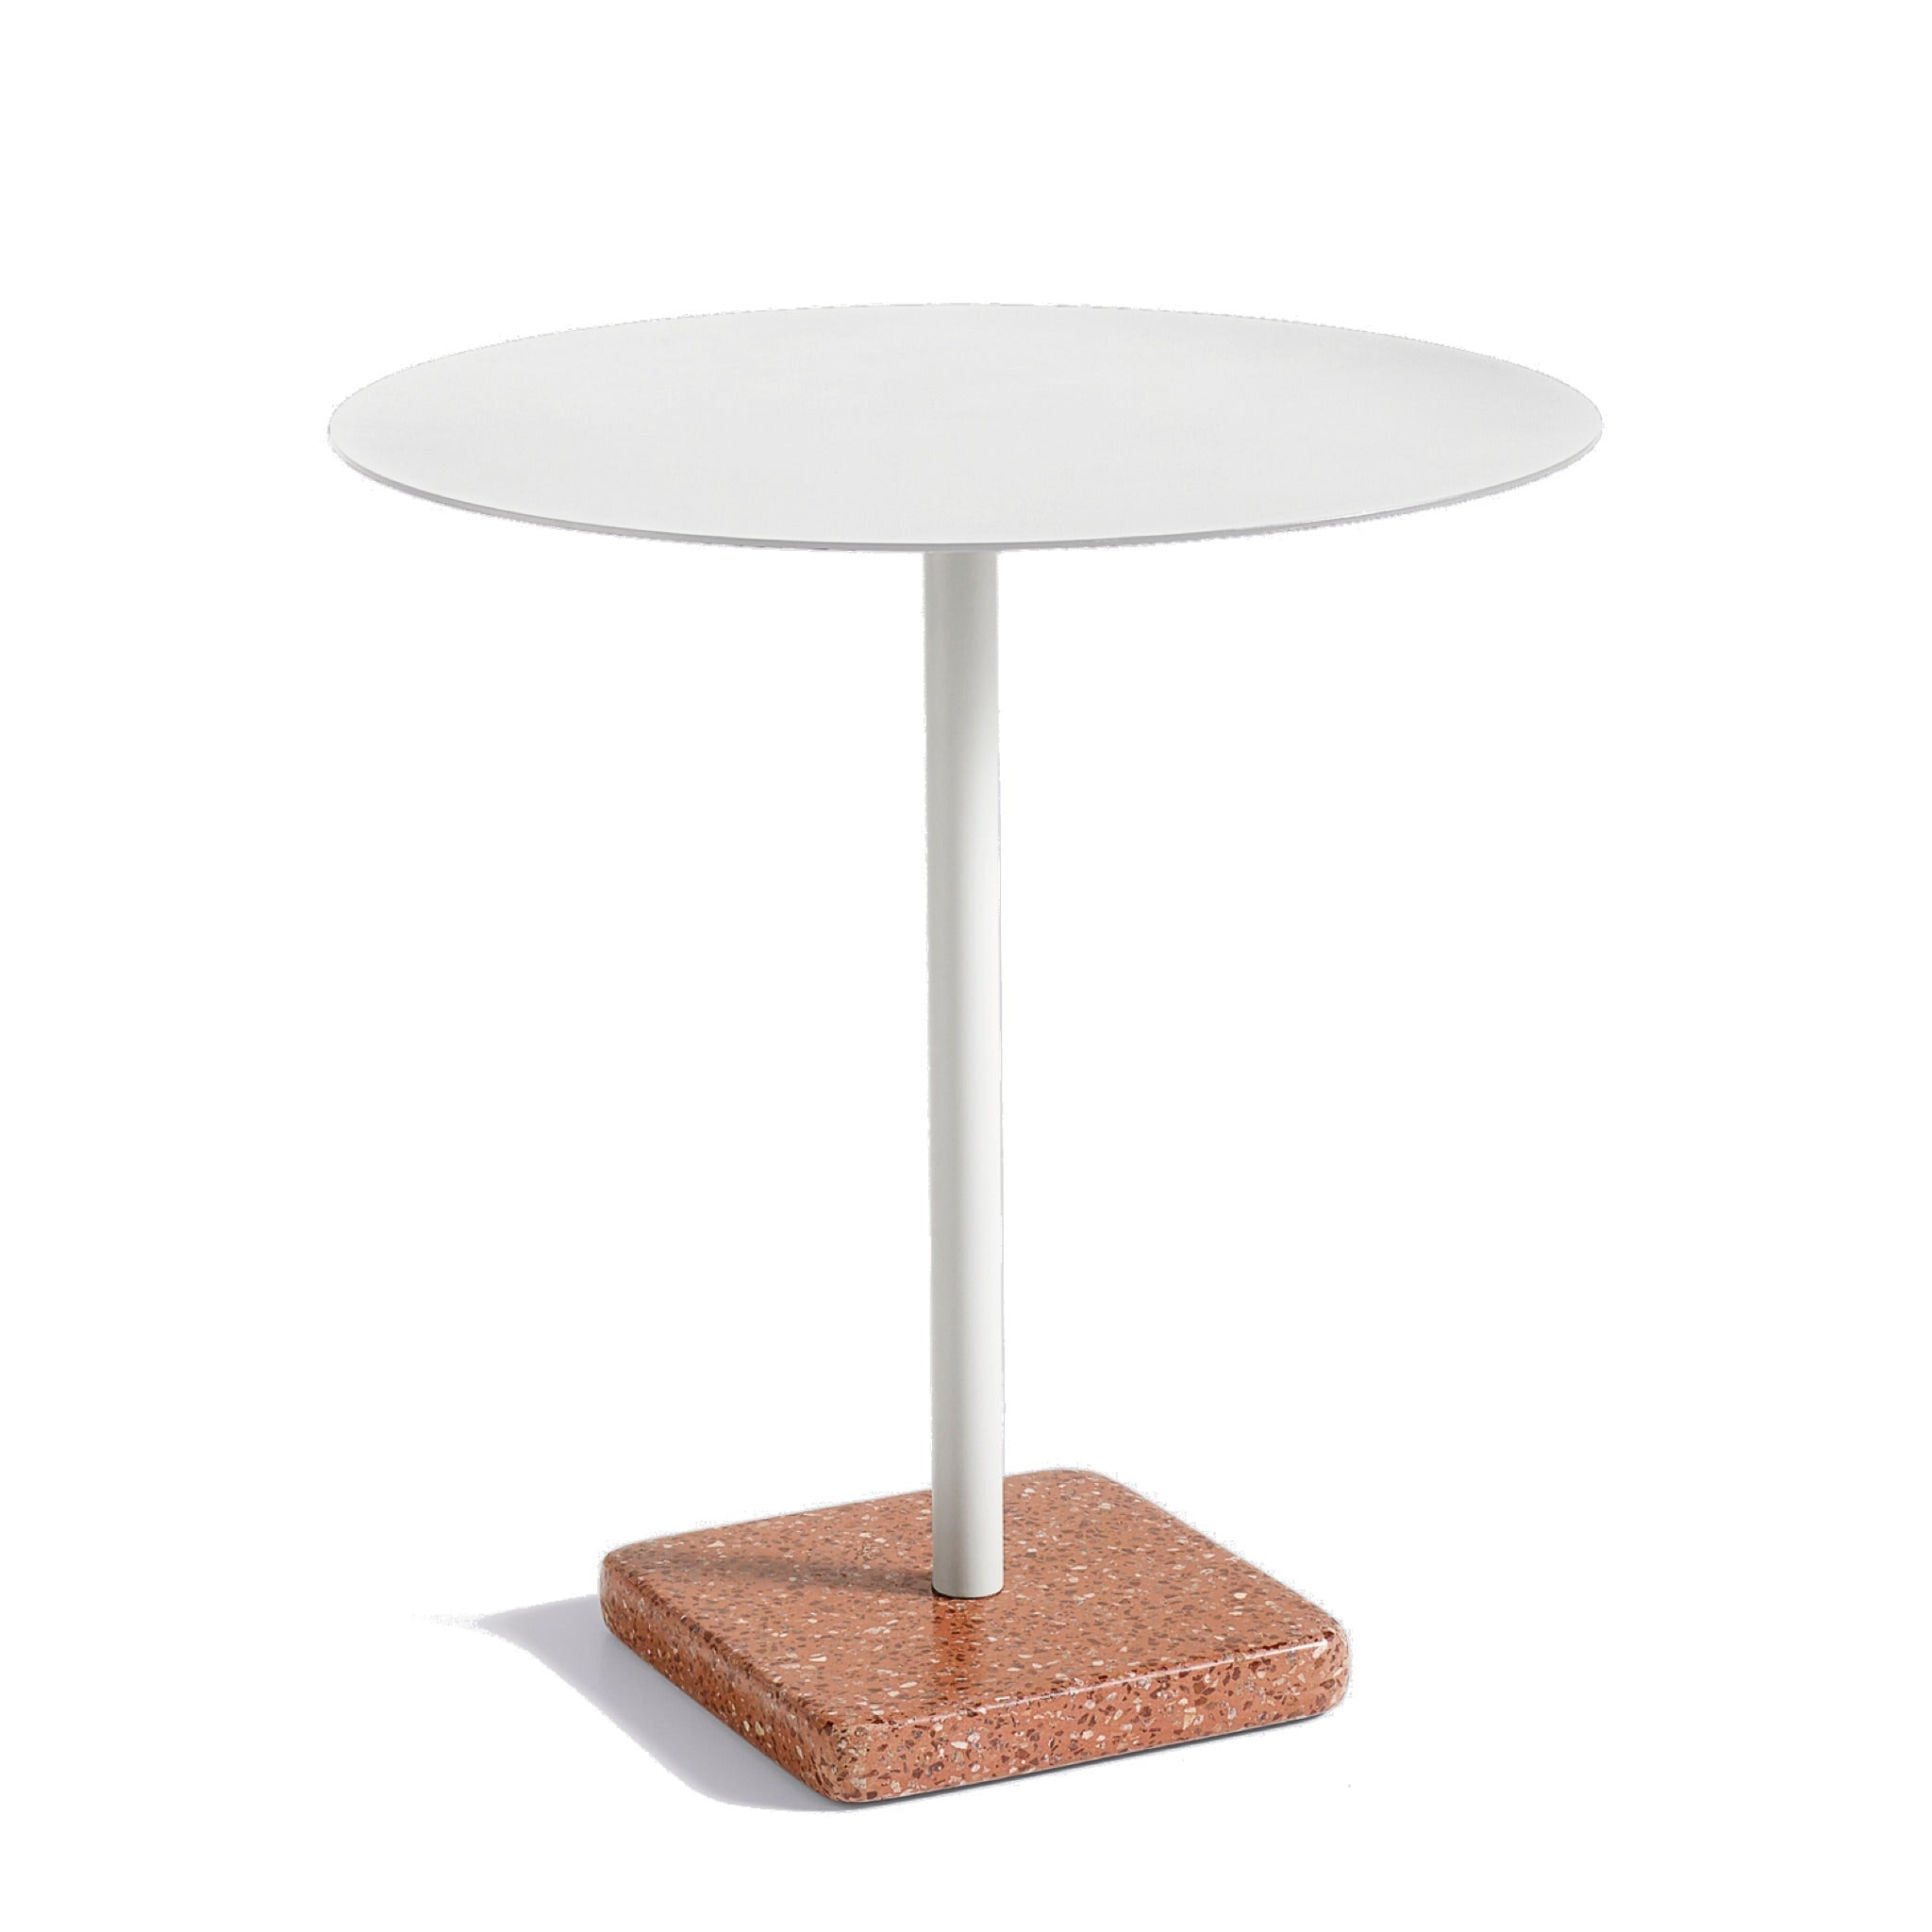 Terrazzo Table Round by Hay